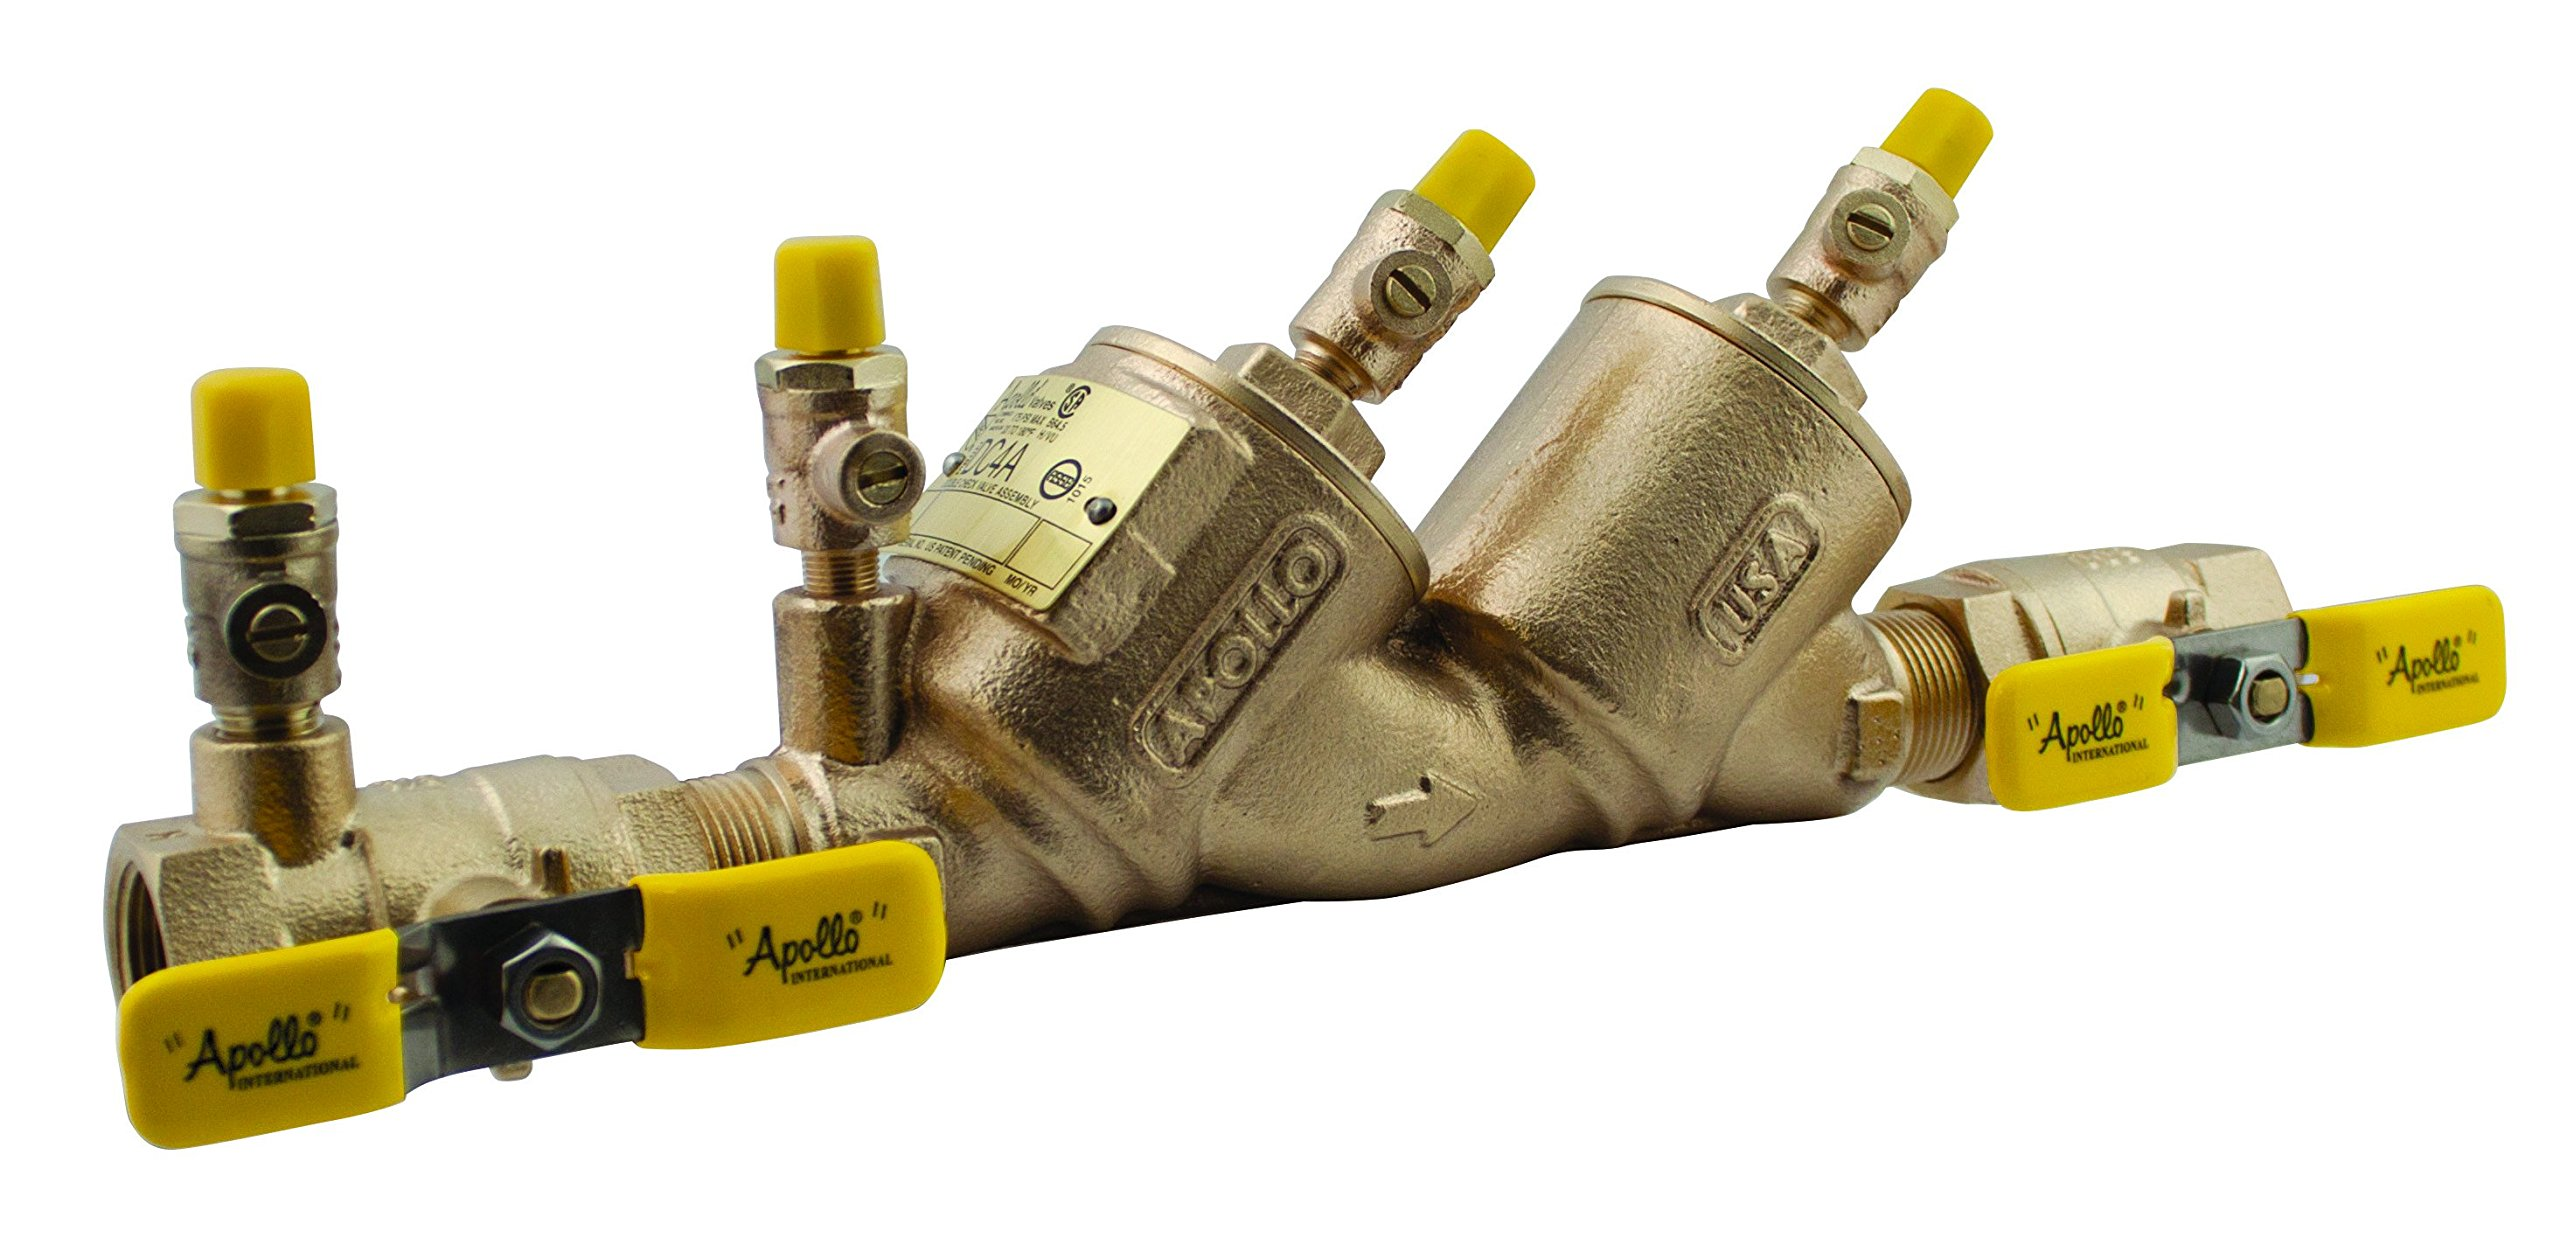 Apollo 4ALF105T2F Bronze Lead Free Double Check Valve Assembly with Ball Valve and SAE Threaded Test Cocks, 1'' Size by Apollo Valve